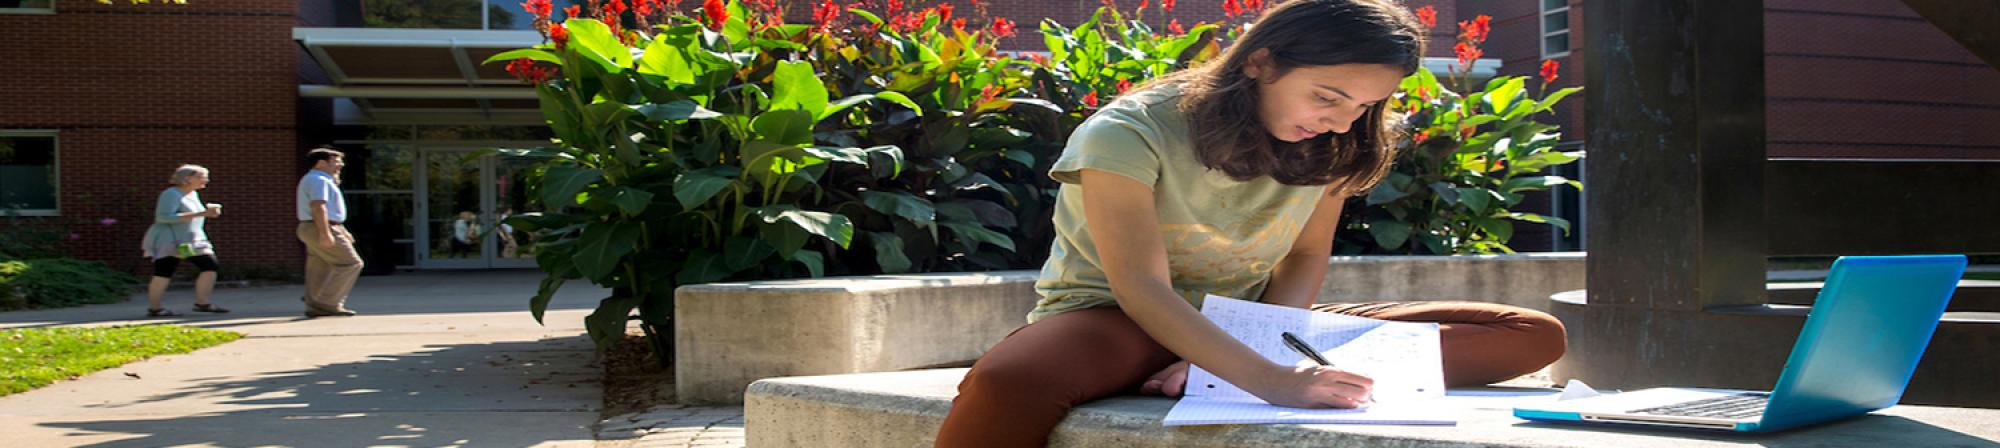 female student studing outside on a bench with her laptop on a sunny day